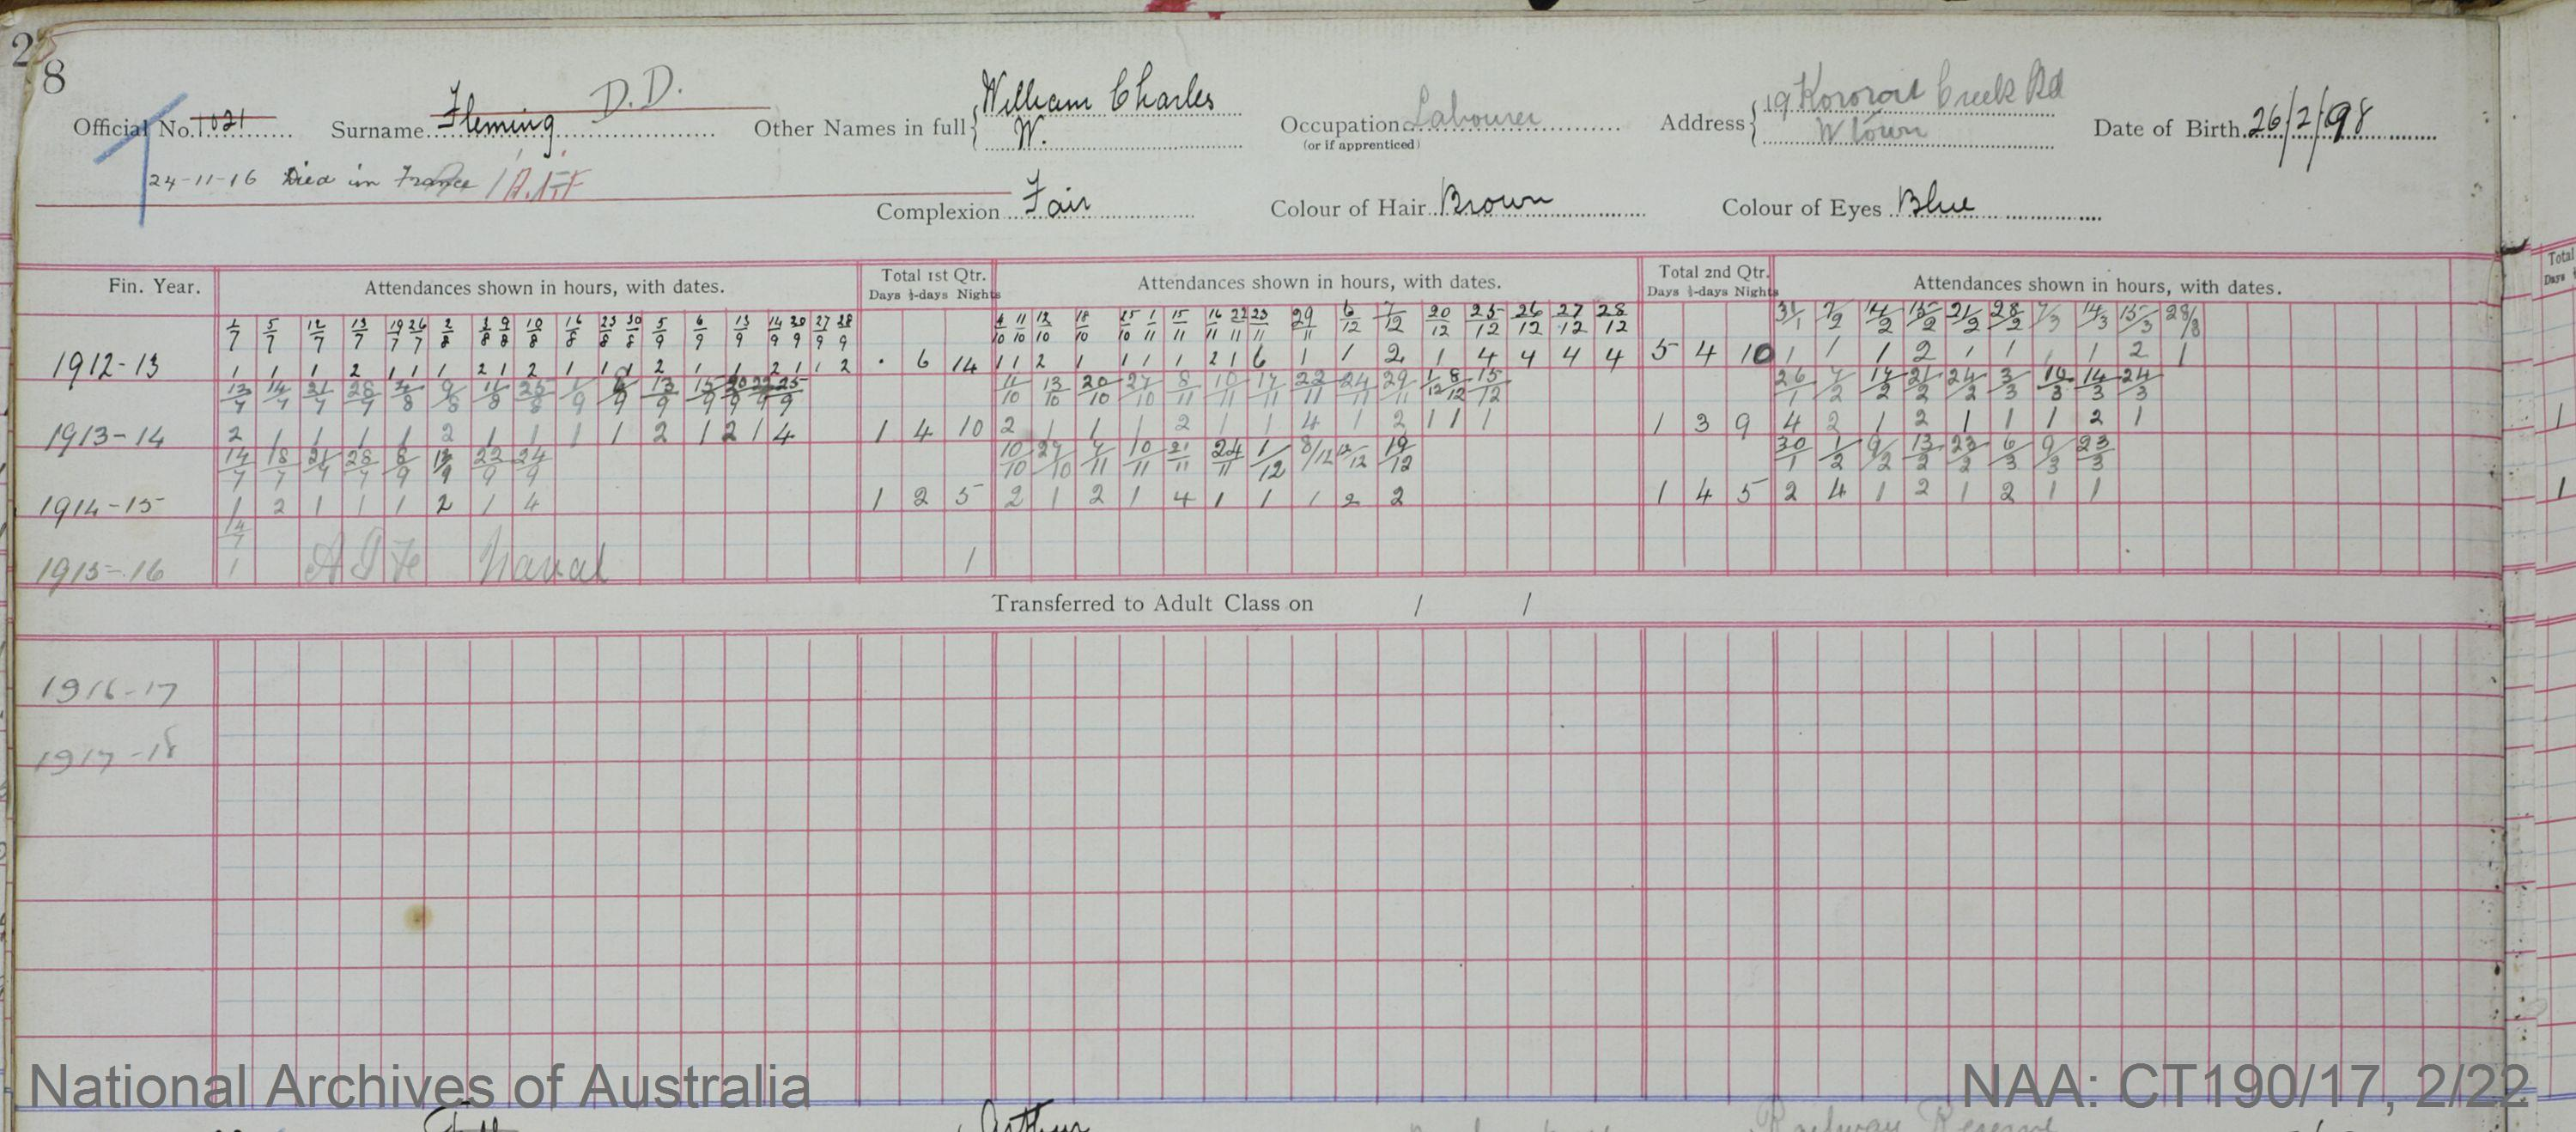 SURNAME - FLEMING;  GIVEN NAME(S) - William Charles W;  OFFICIAL NUMBER - 1021;  DATE OF BIRTH - 26 February 1898;  PLACE OF BIRTH - [Unknown];  NEXT OF KIN - [Unknown] ;  SERVICE/STATION - Williamstown Victoria;  REGISTRATION DATE - 1912